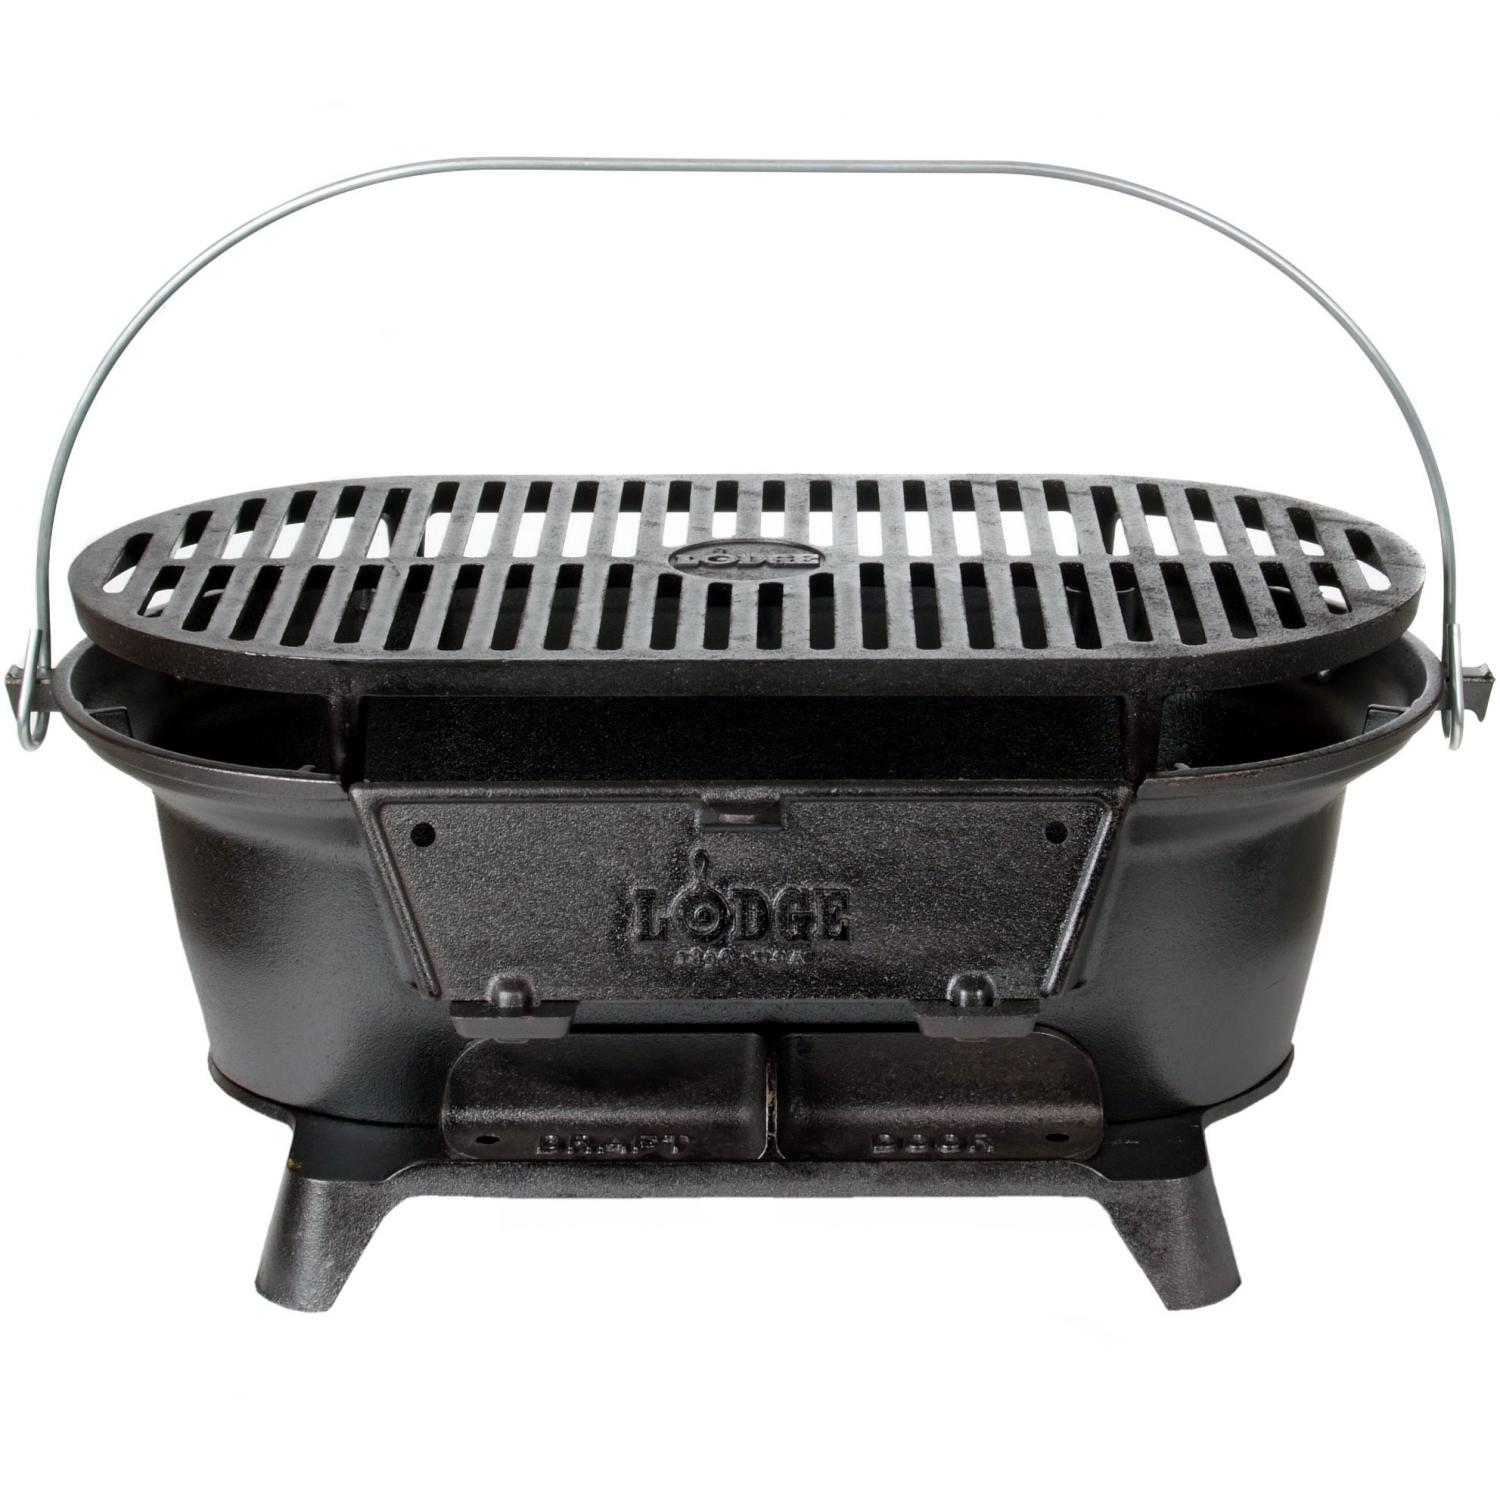 Lodge Sportsman Hibachi Charcoal Grill - L410